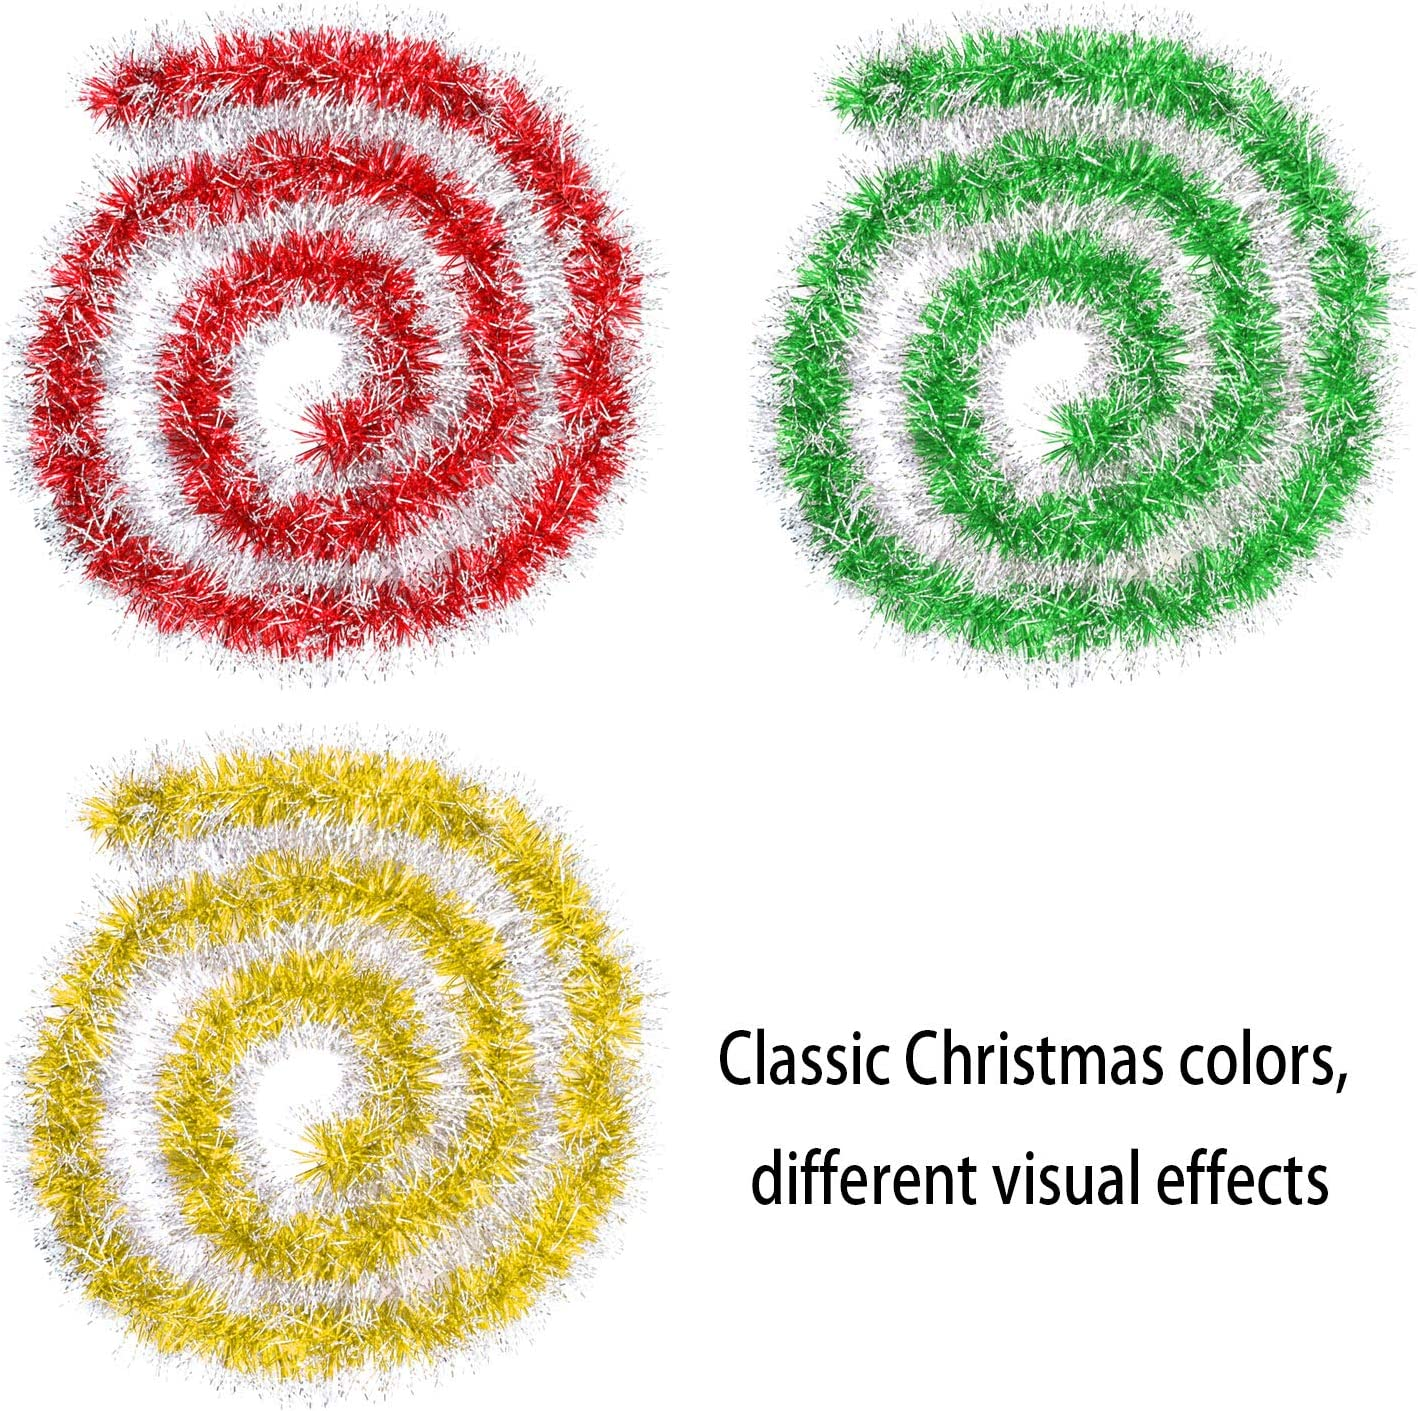 Gold Red Green Mixed Color Elcoho 6 Pieces Christmas Tinsel Garland Classic Shiny Sparkly Party Soft Tinsel Christmas Tree Ceiling Hanging Decorations